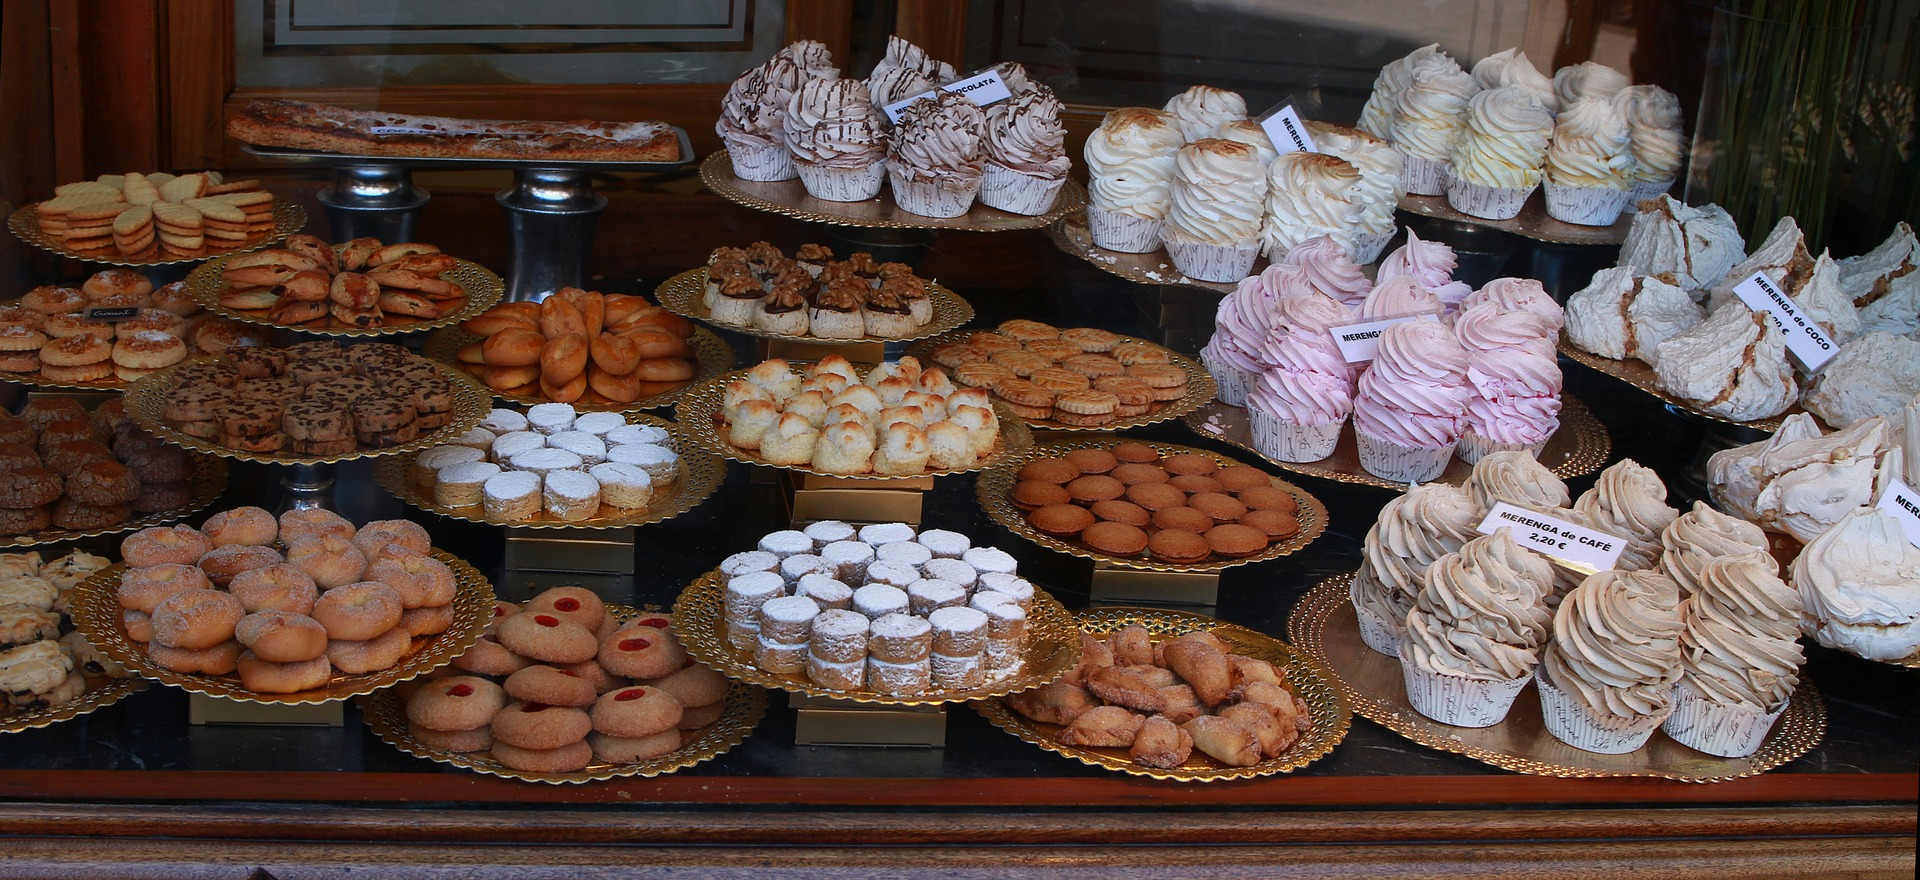 sweets-887722_1920